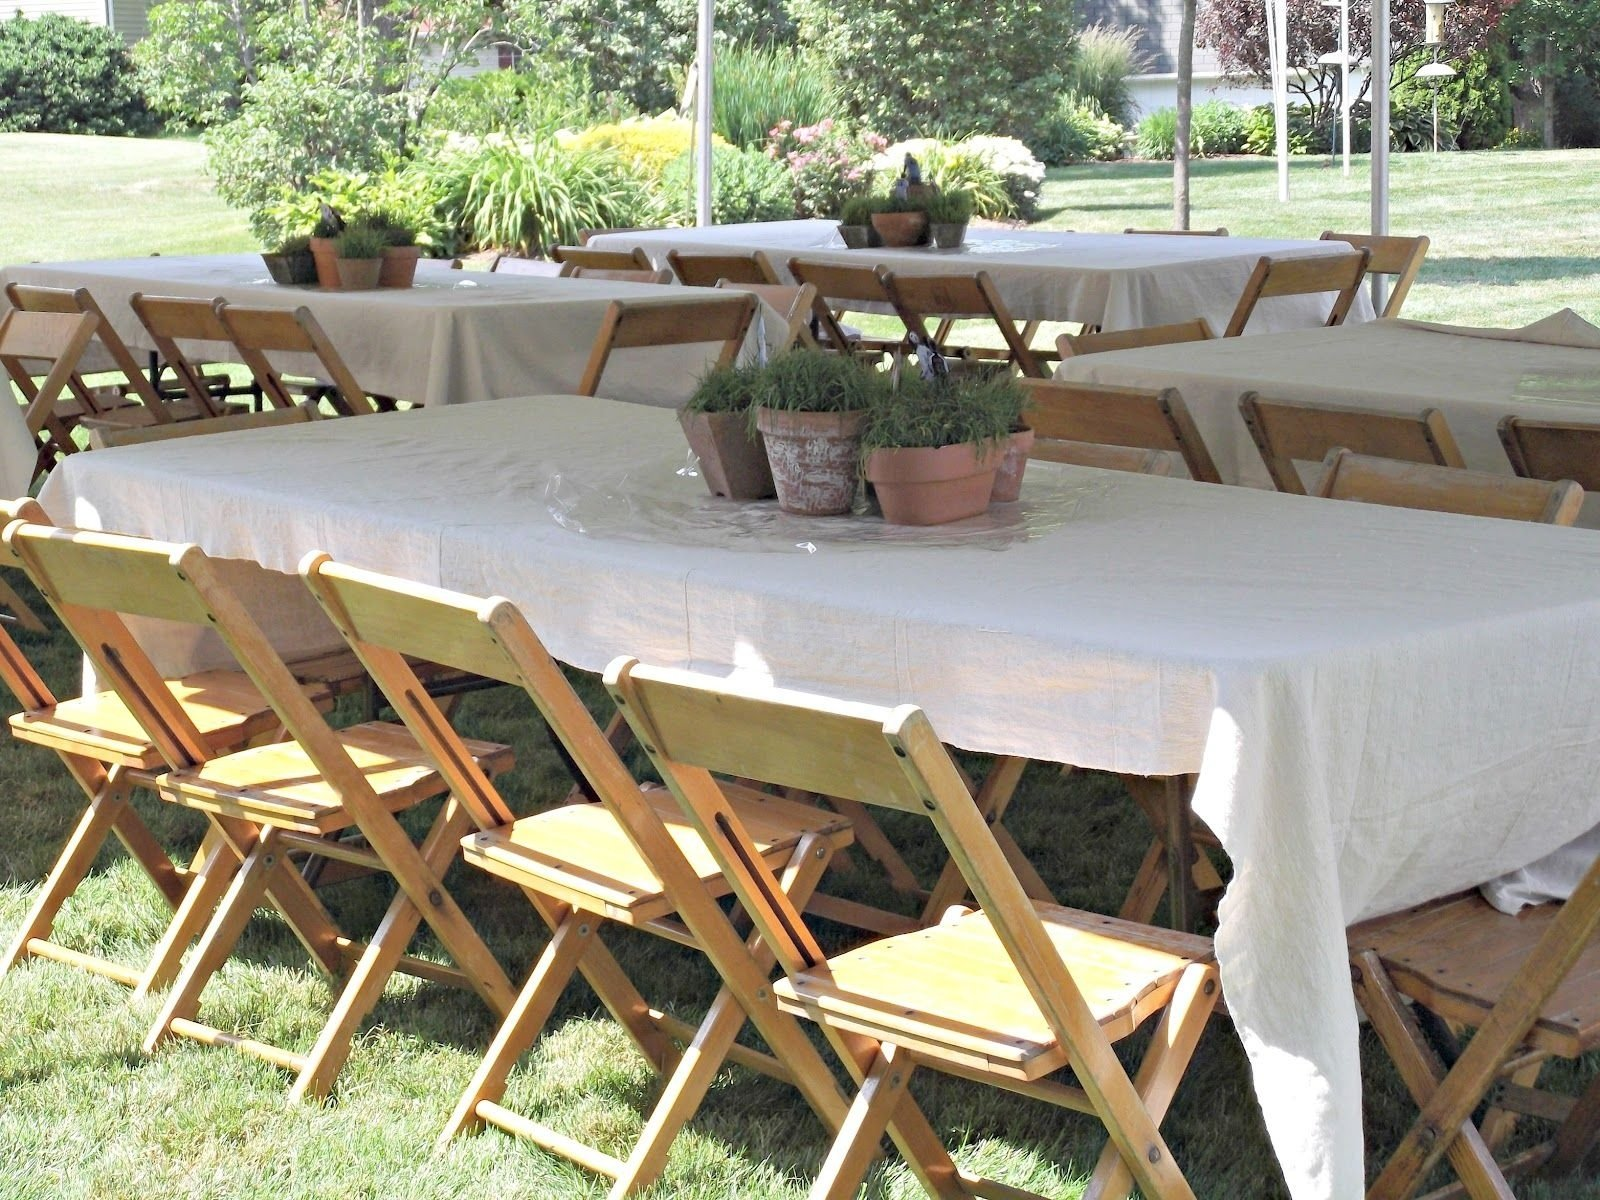 10 Awesome Graduation Party Ideas For Guys whats old is new graduation party ideas for guys graduation 2021